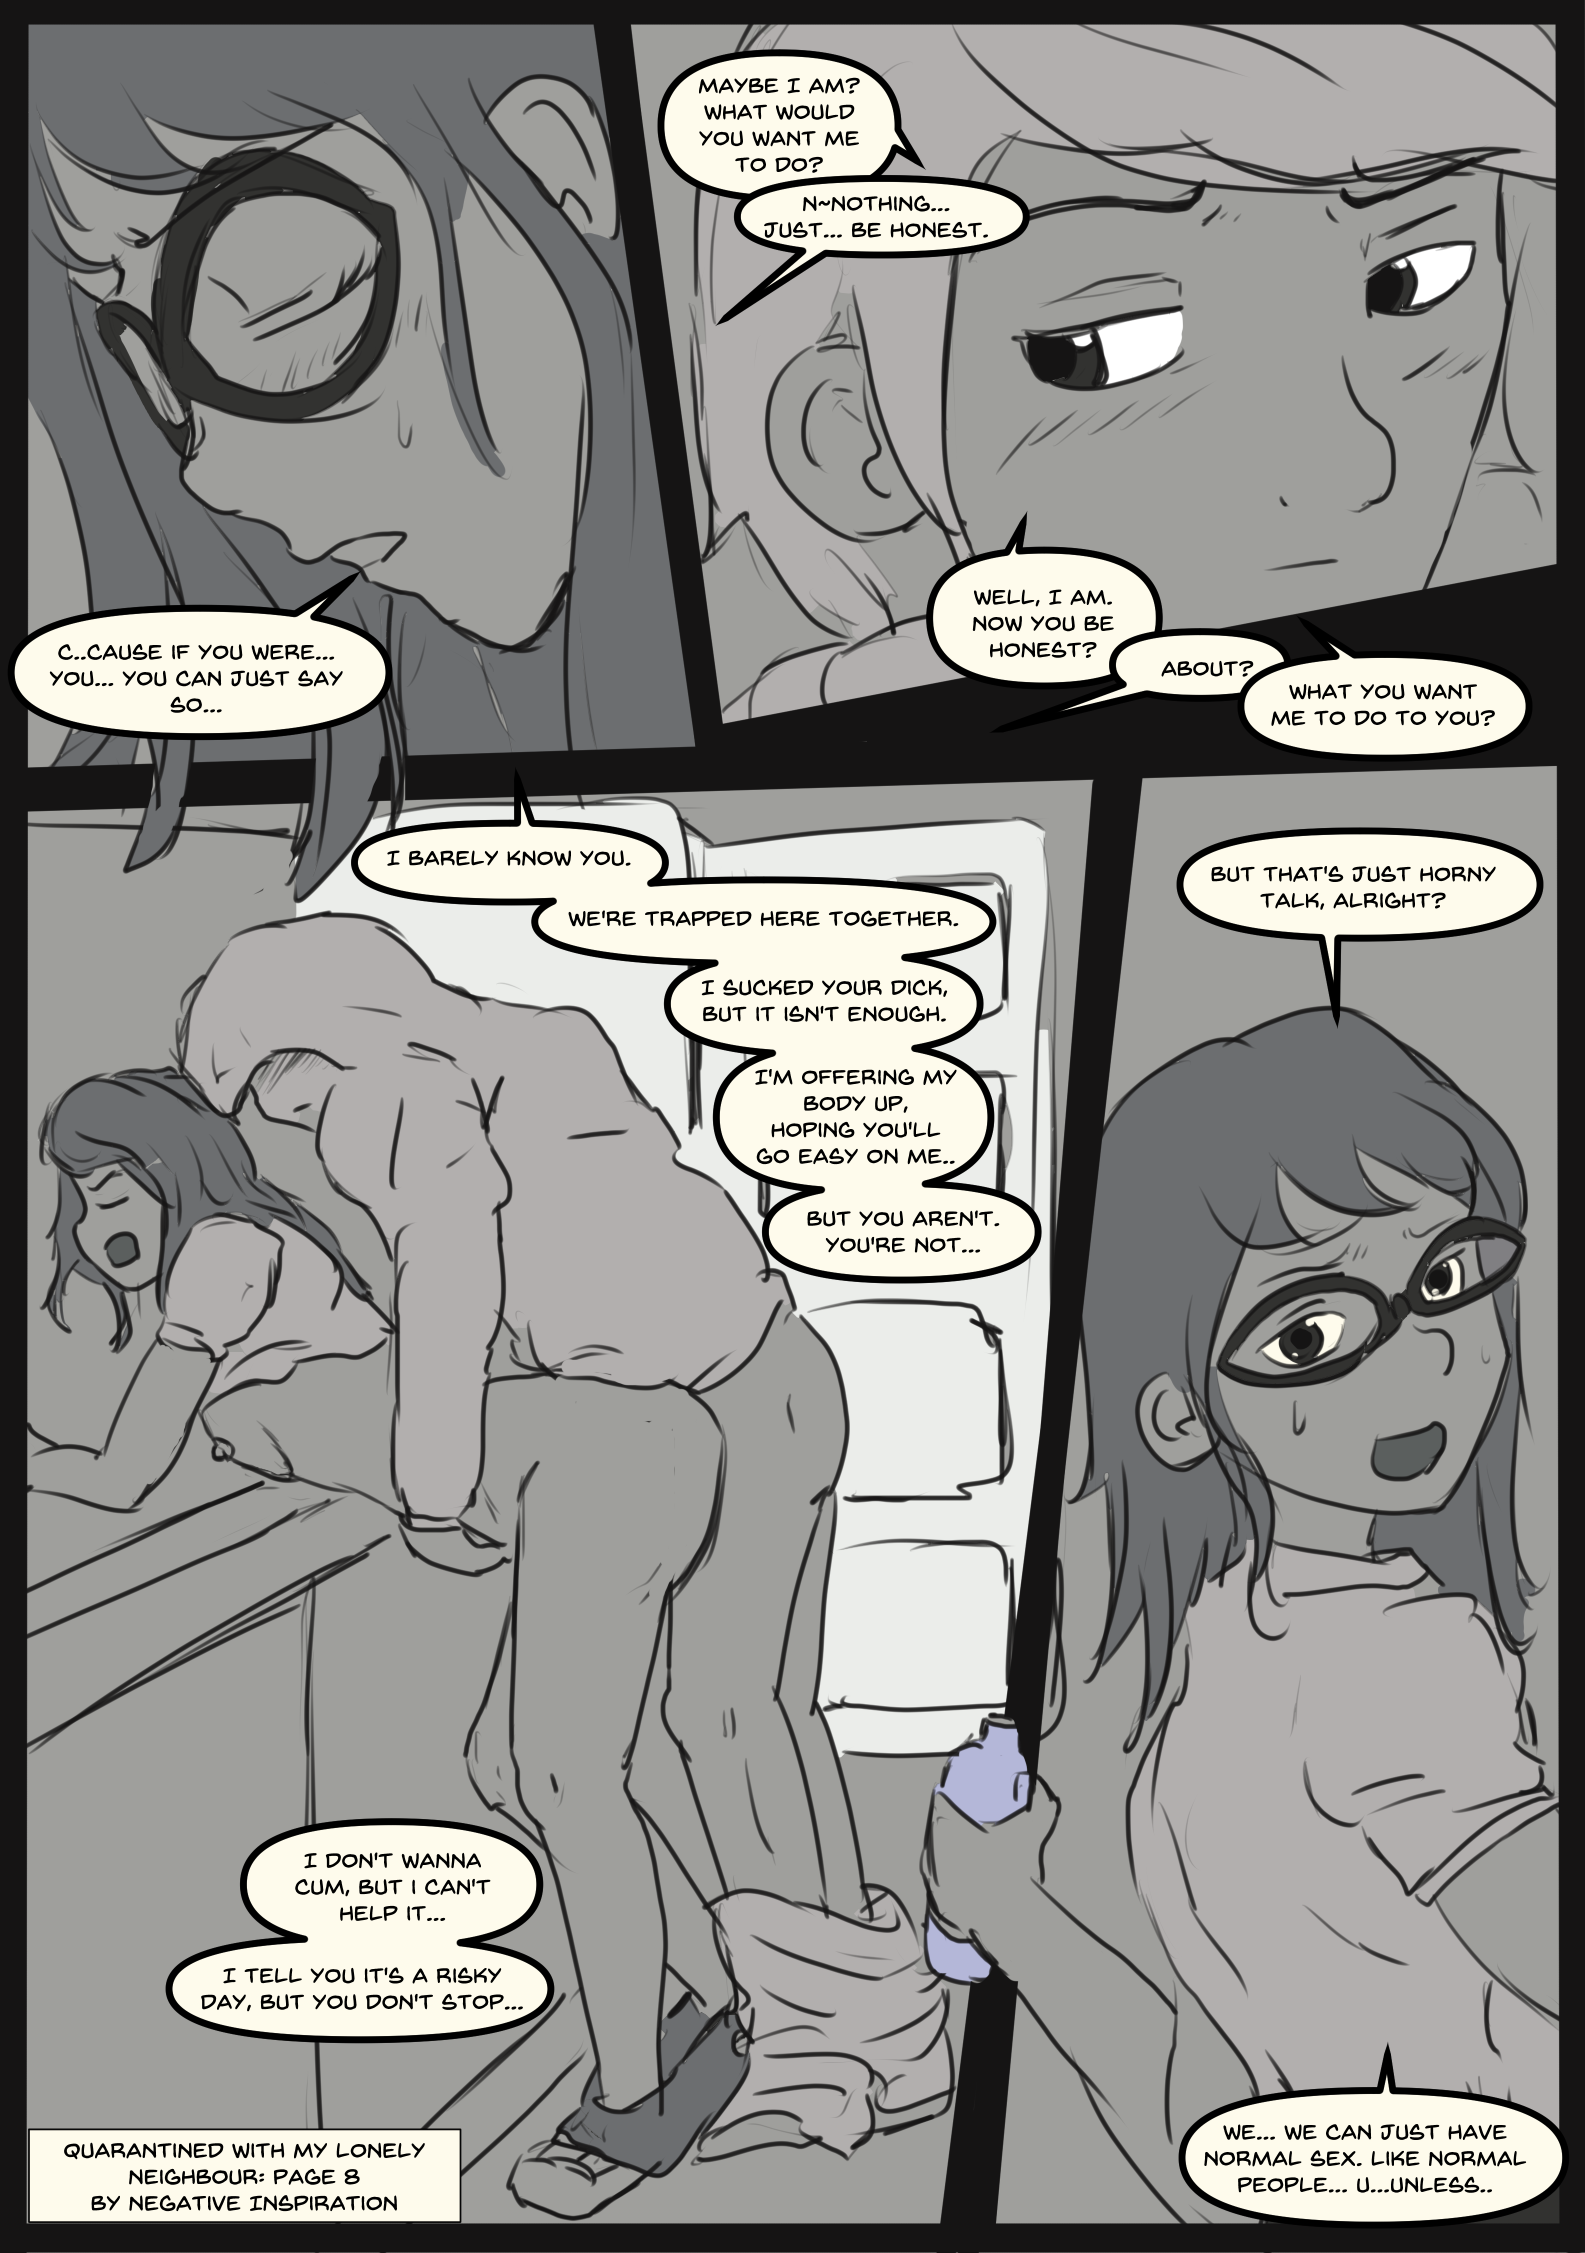 Quarantined with my Lonely Neighbour: Page 8